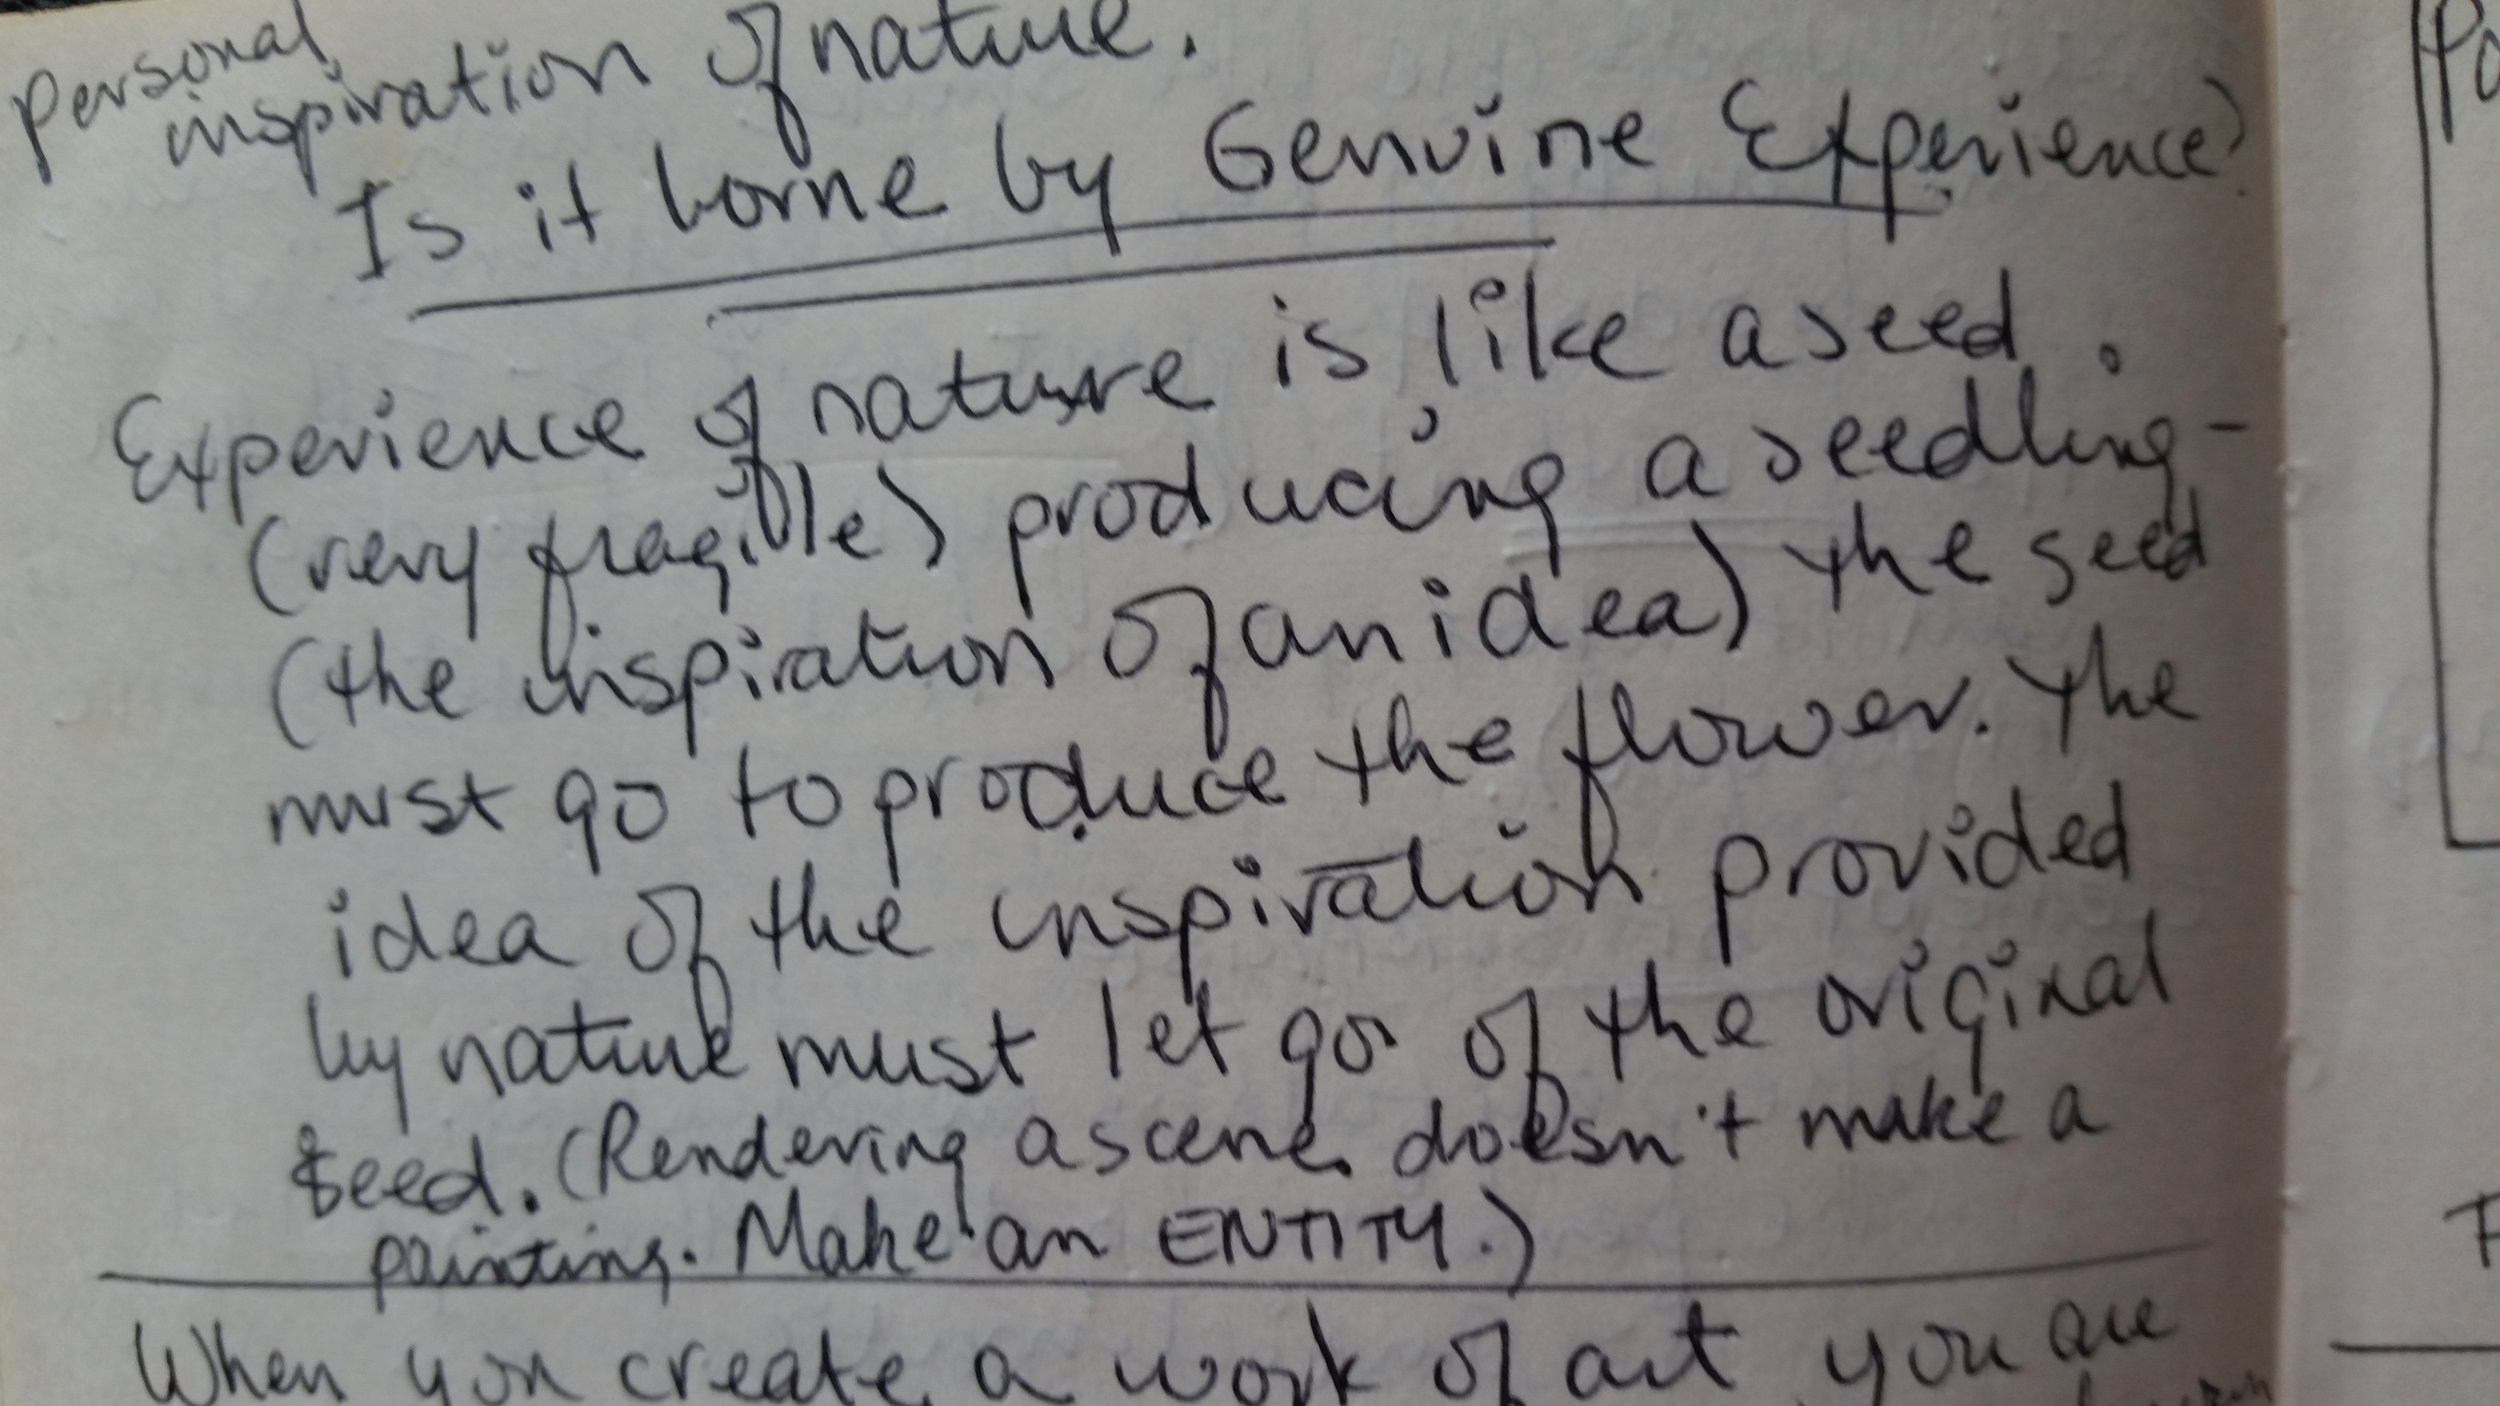 Notes from a 1970 Pachner workshop, words that make an impact on my decisions